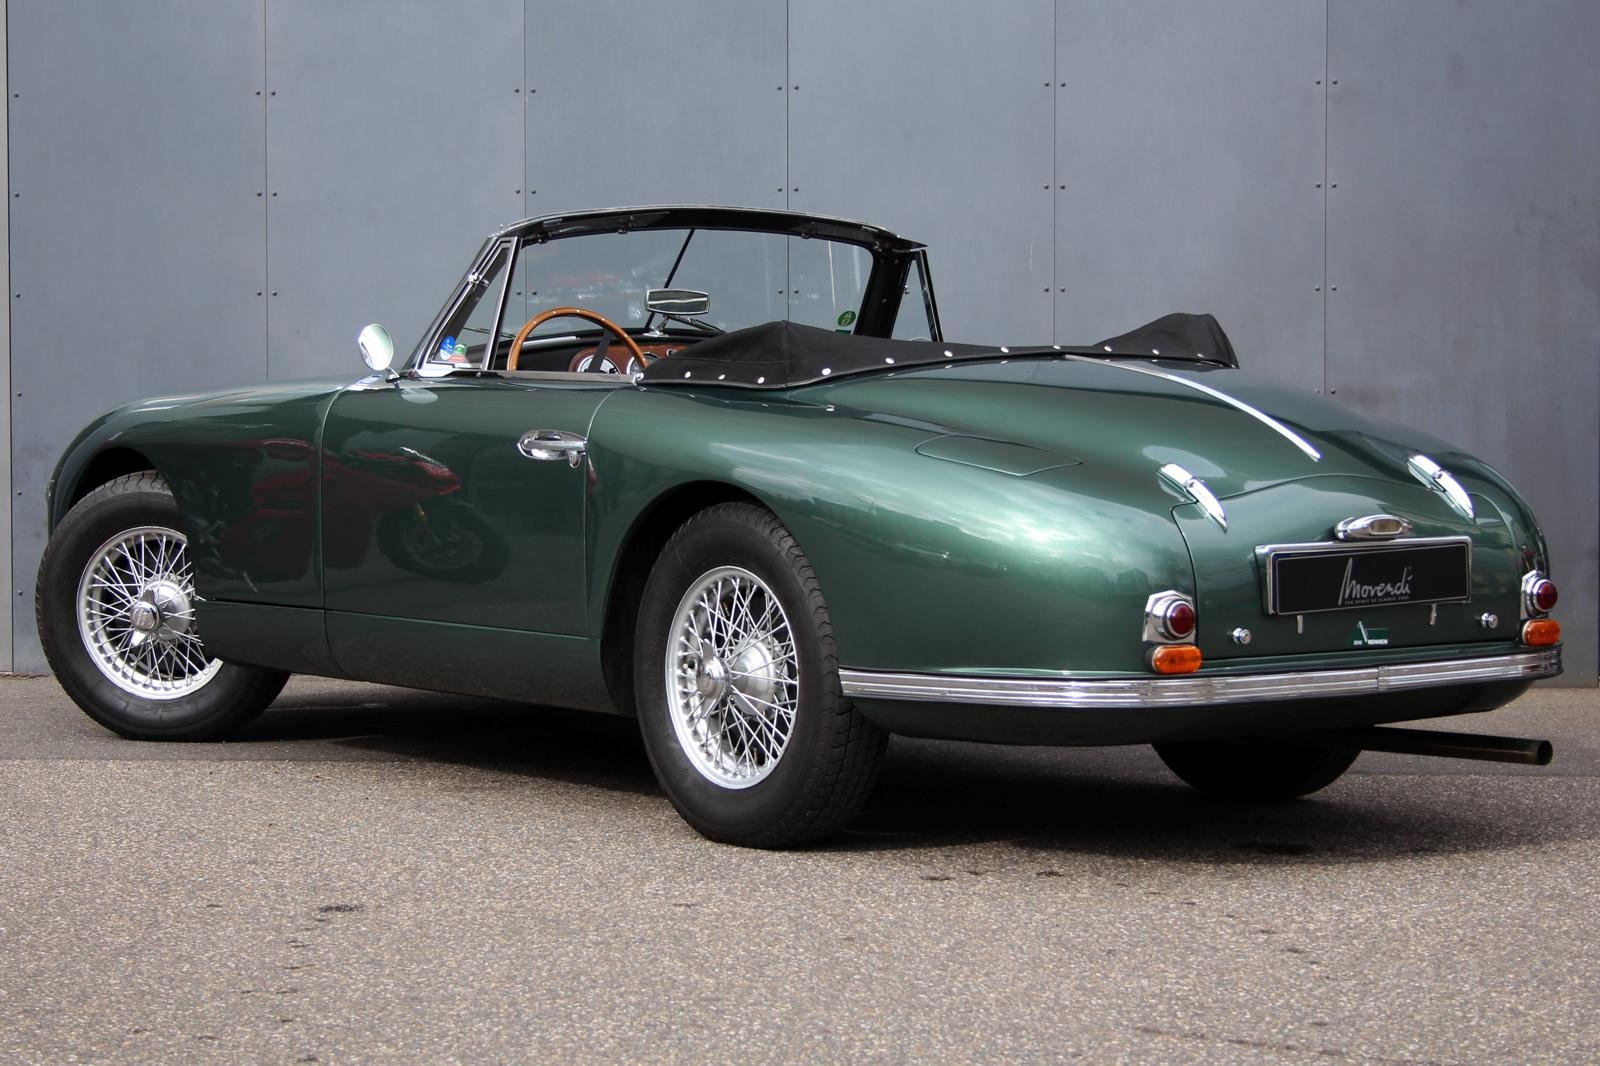 1953 Aston Martin DB2 DHC Vantage LHD For Sale (picture 2 of 6)